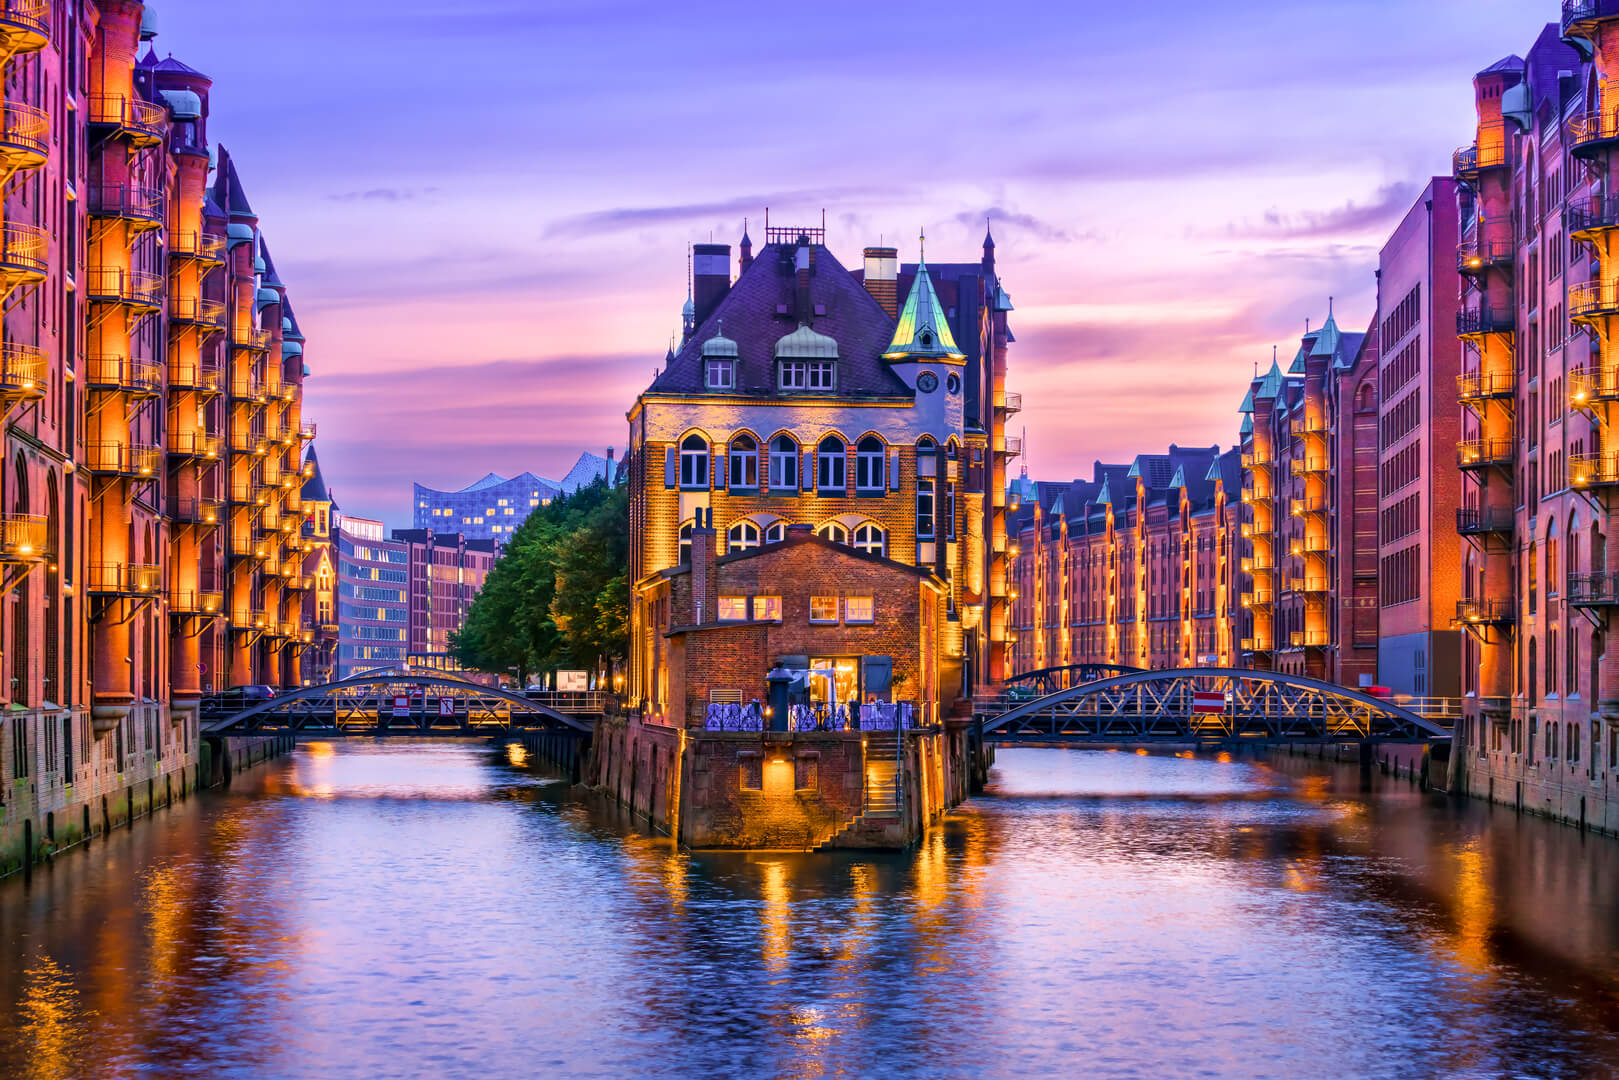 The warehouse district (Speicherstadt) in Hamburg, Germany, at dusk. View of Wandrahmsfleet. The world's largest warehouse district is located in the port of Hamburg in the HafenCity area.